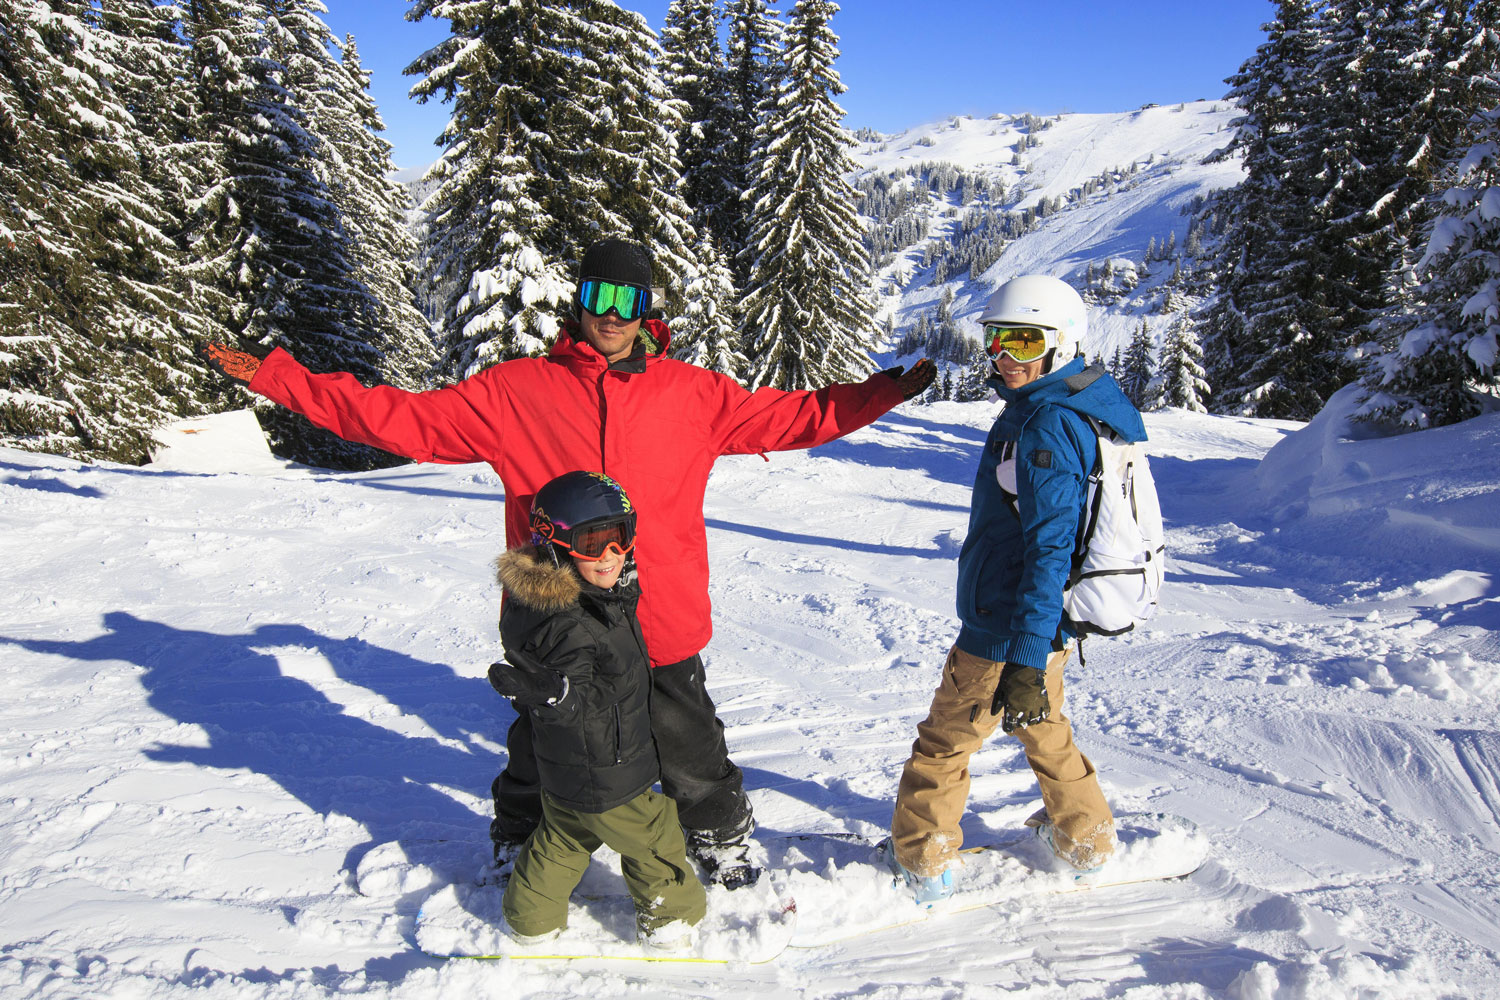 Family snowboarding in Avoriaz